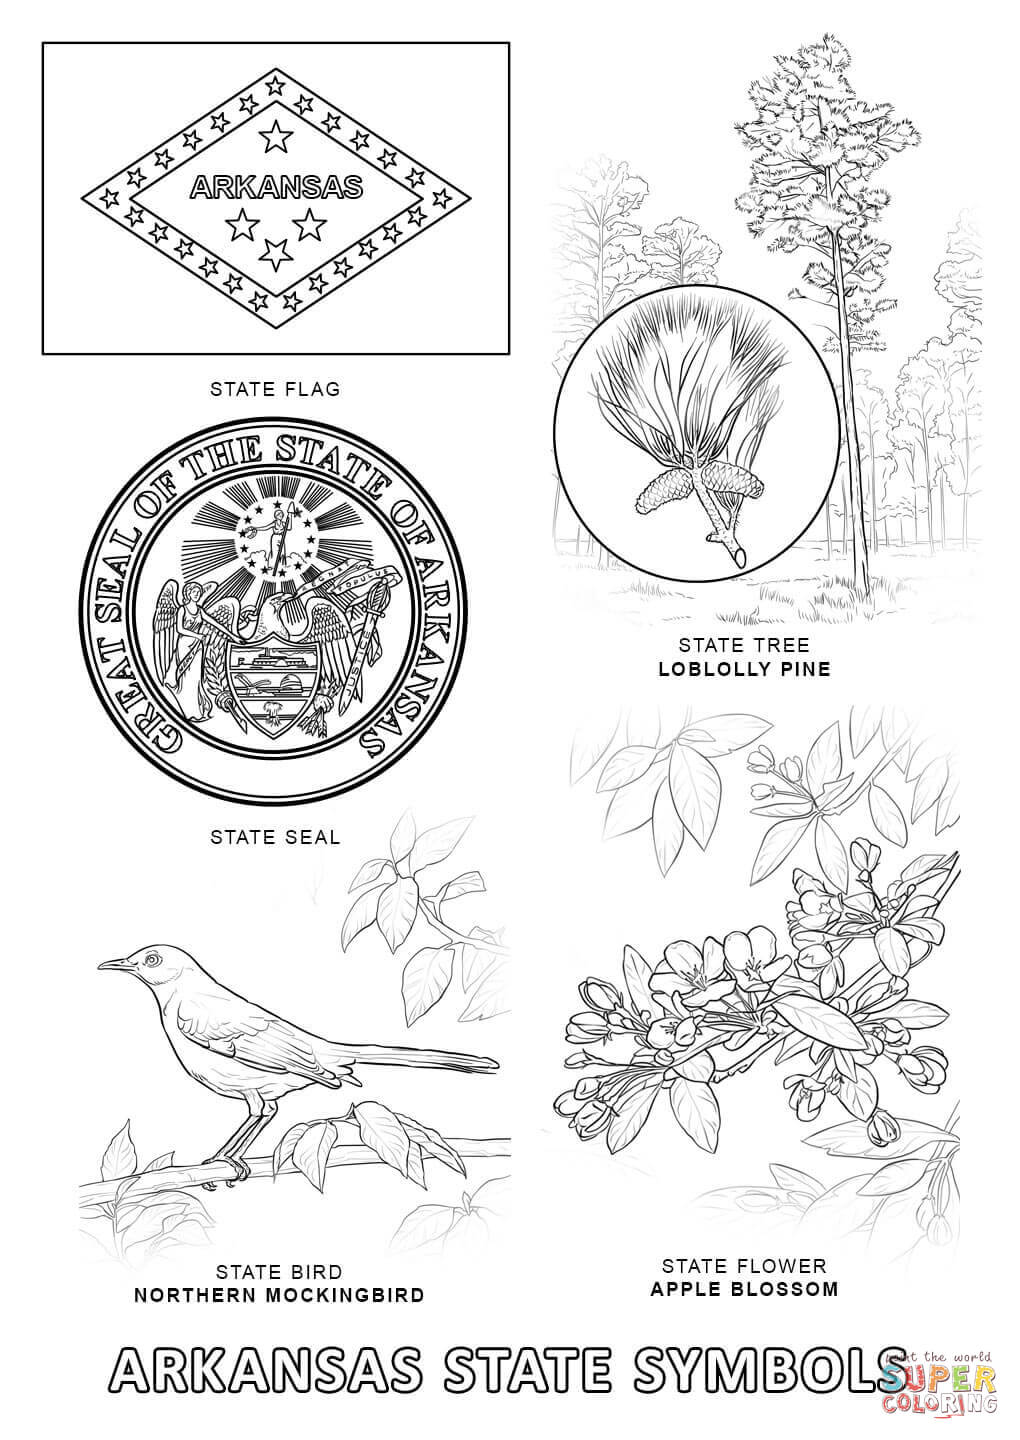 Arizona State Symbols coloring page | Free Printable Coloring Pages | 1440x1020